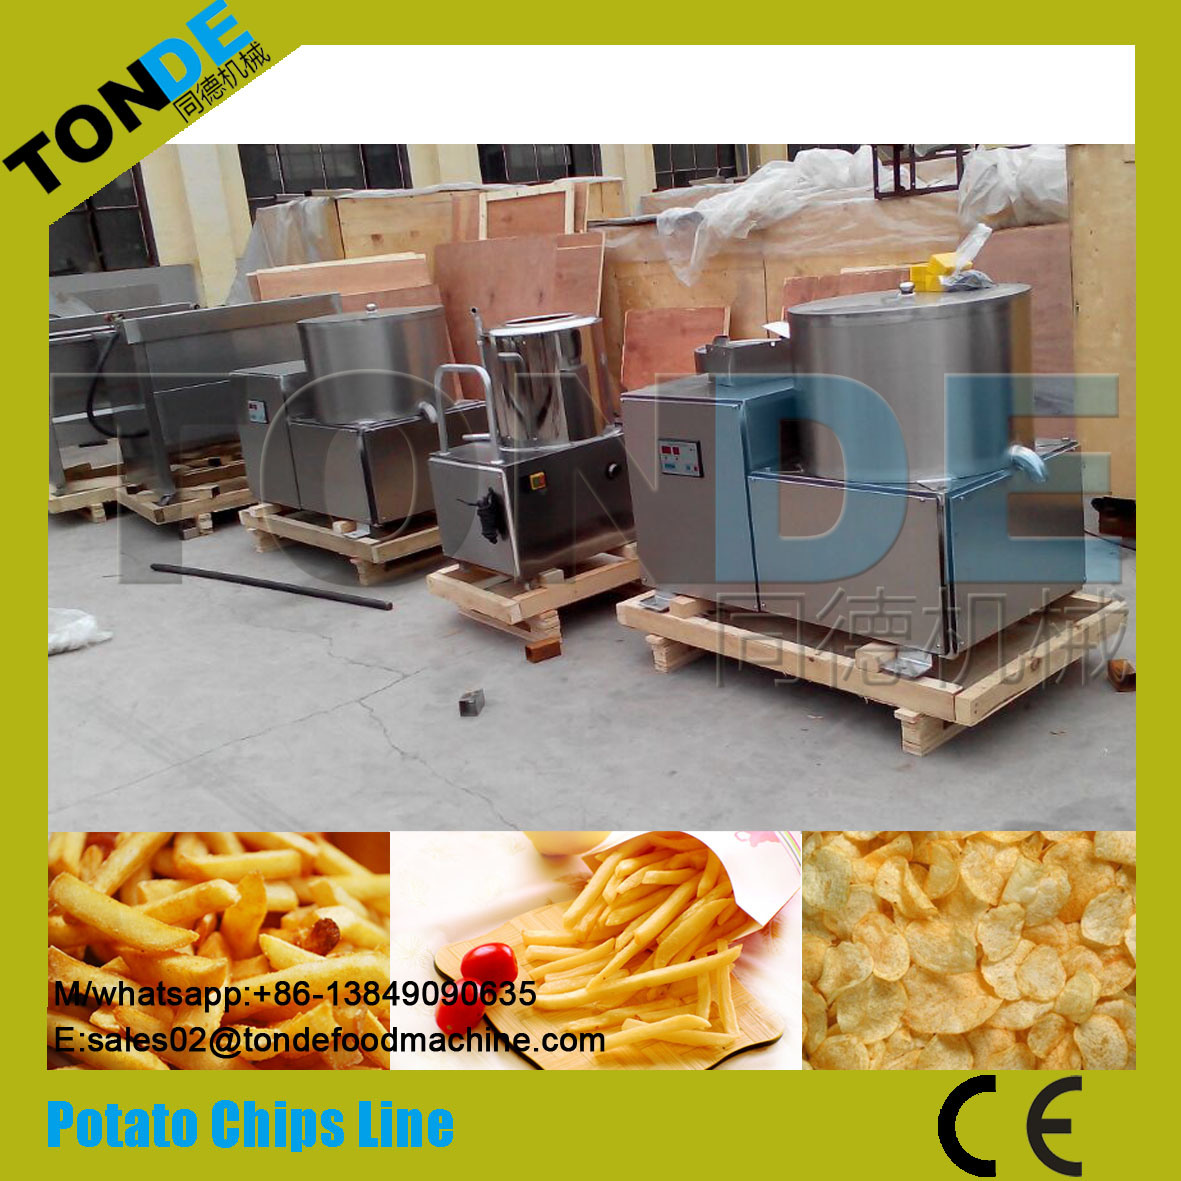 Semi Automatic Stainless Steel Electric Potato Sticks Production Line pictures & photos